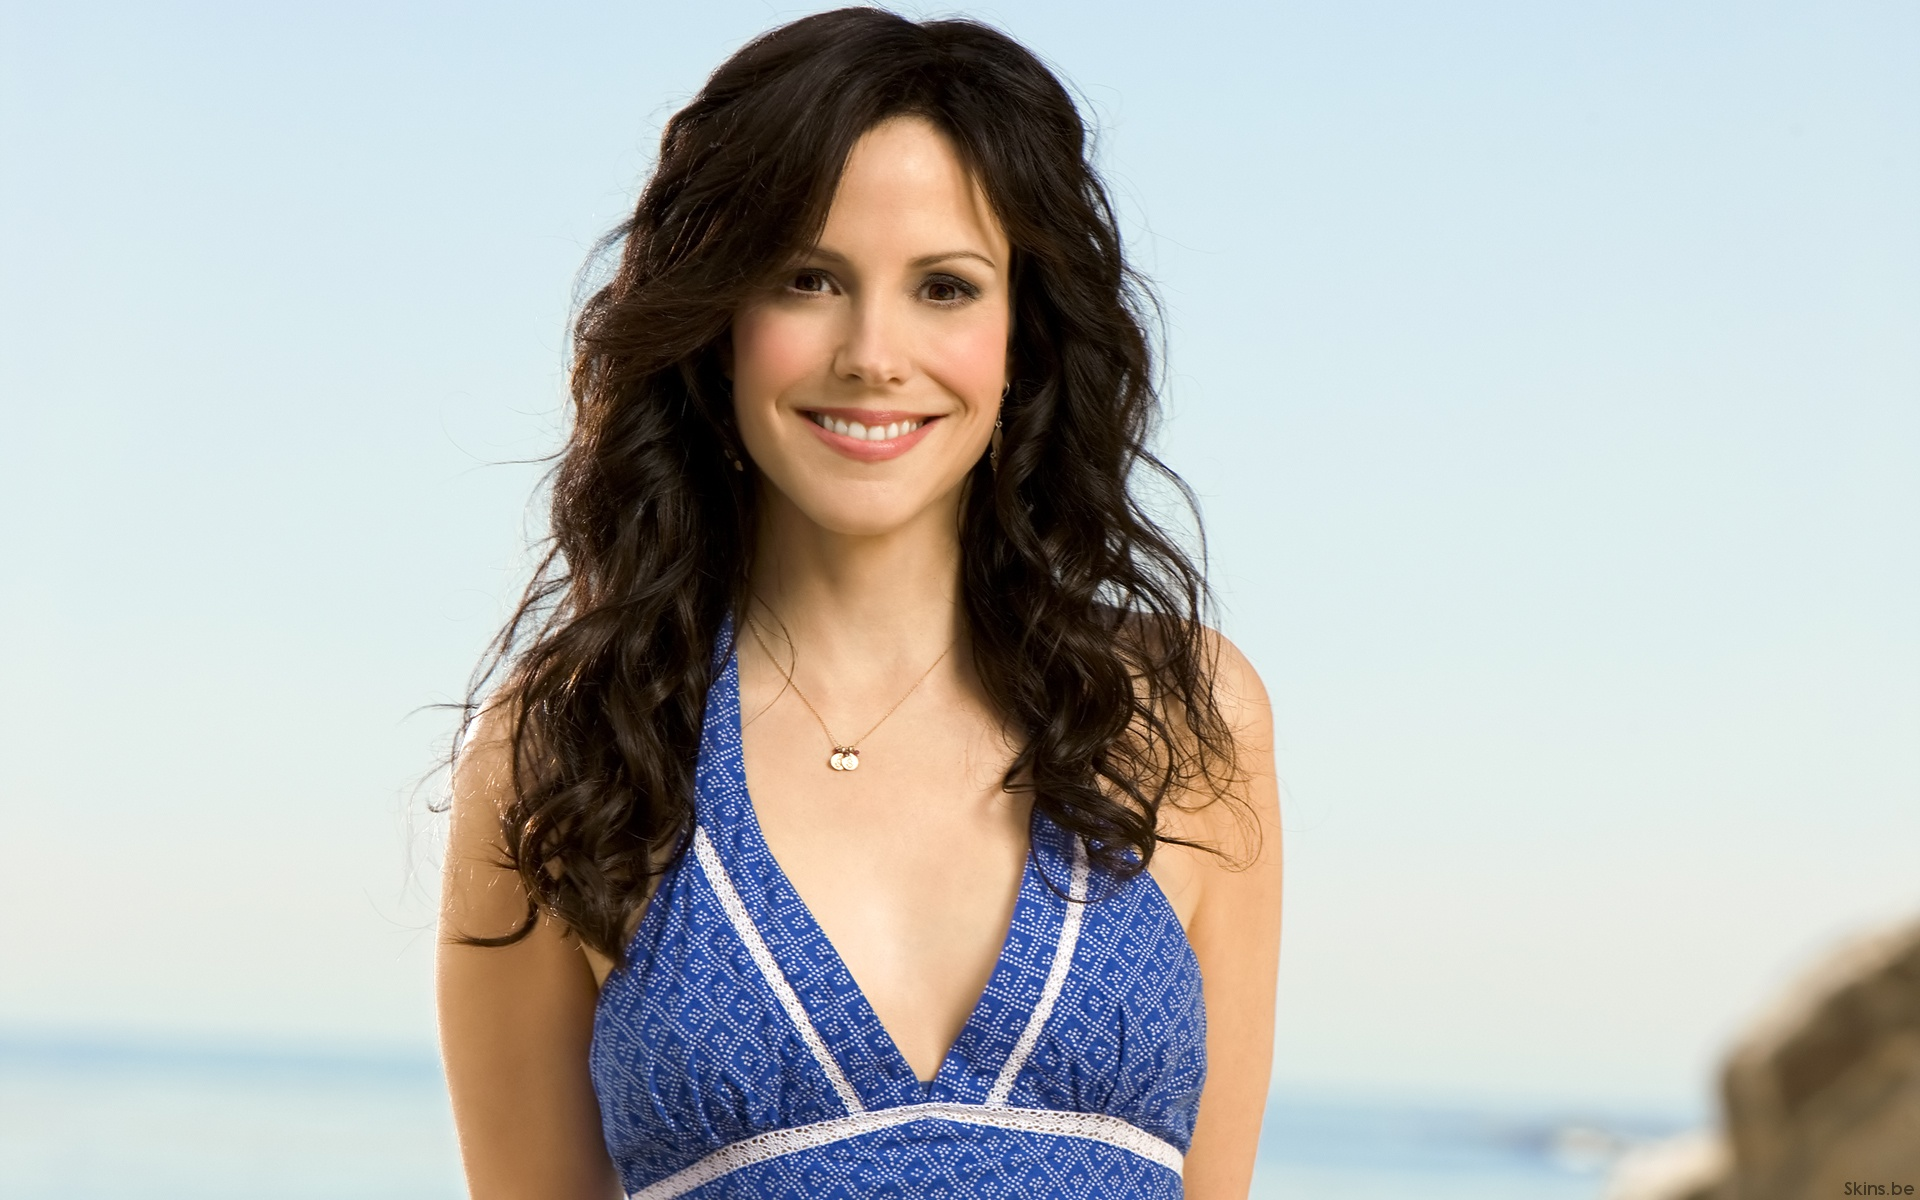 Mary louise parker actress photos